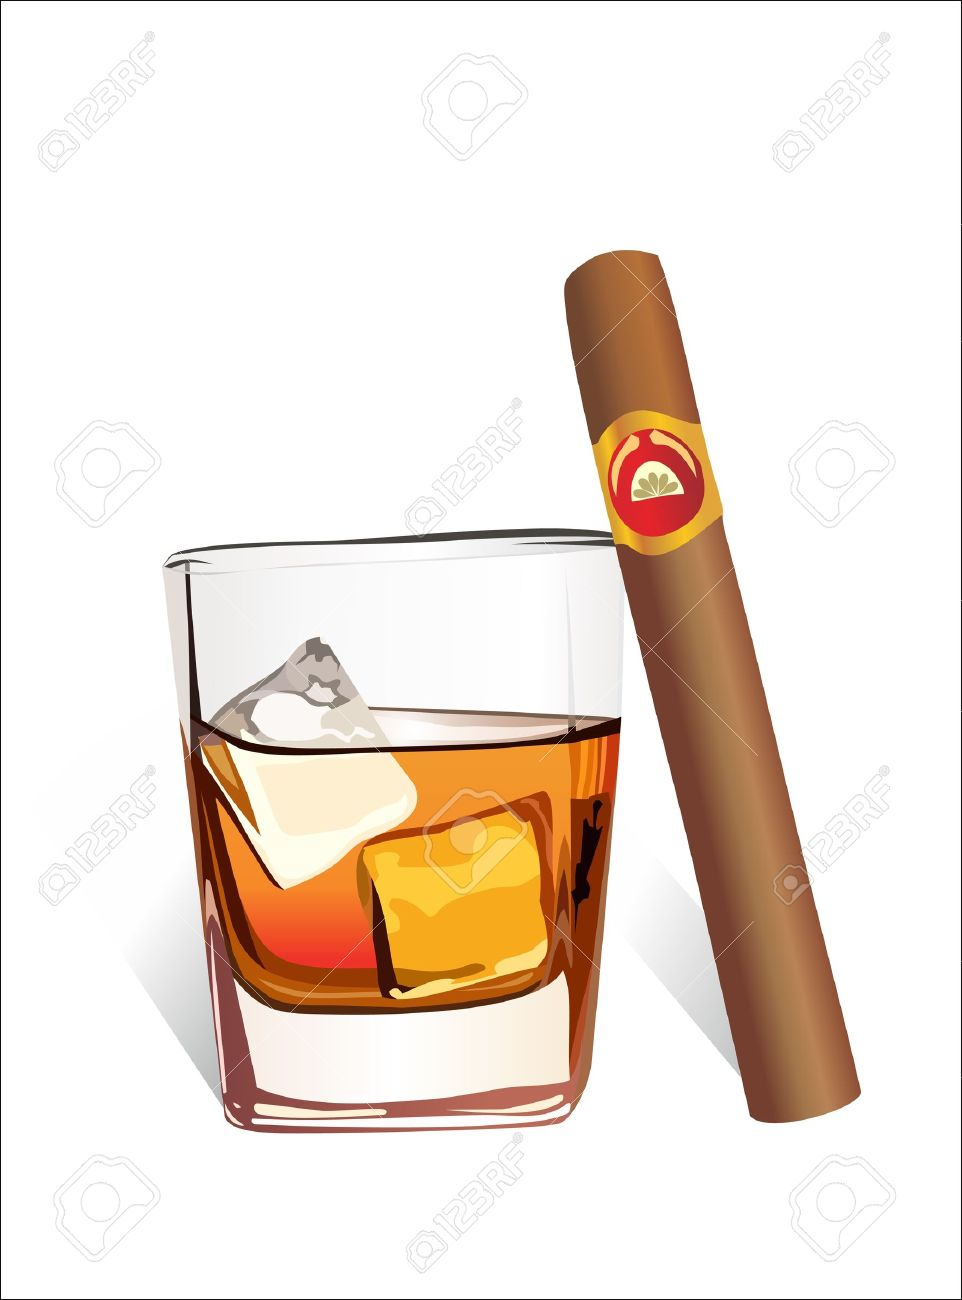 13928755-Whiskey-with-ice-cubes-and-cigar-isolated-on-white-background-Stock-Vector.jpg (962×1300)